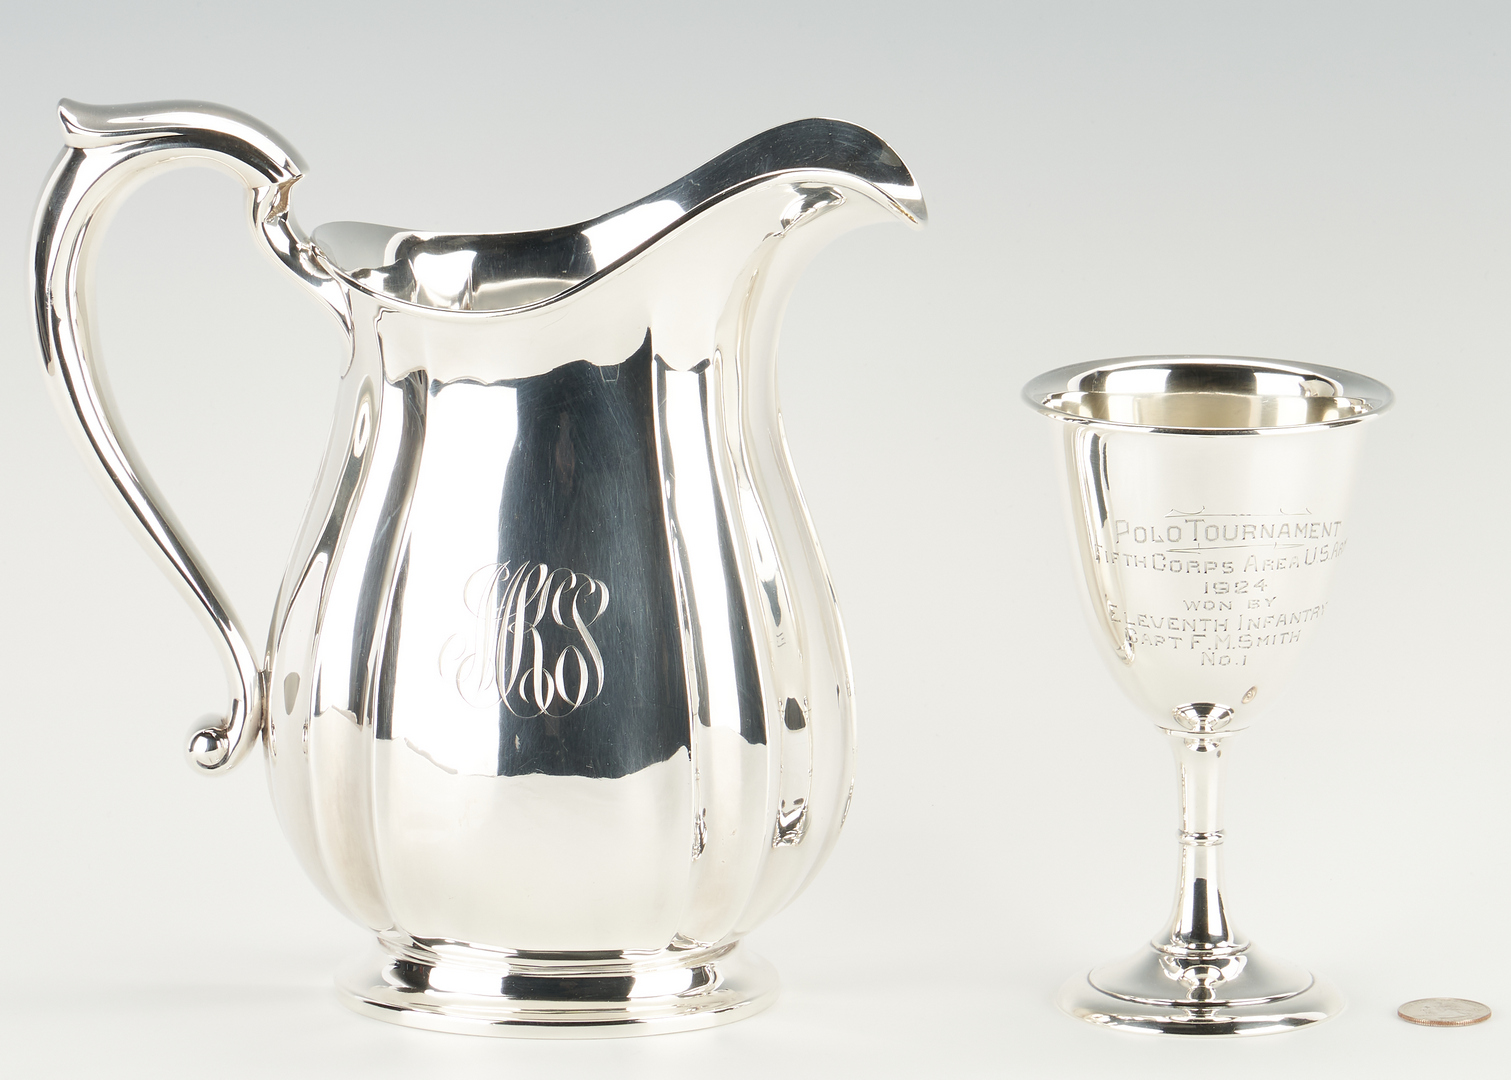 Lot 1228: Sterling Silver Water Pitcher & Polo Tournament Presentation Goblet, 2 items